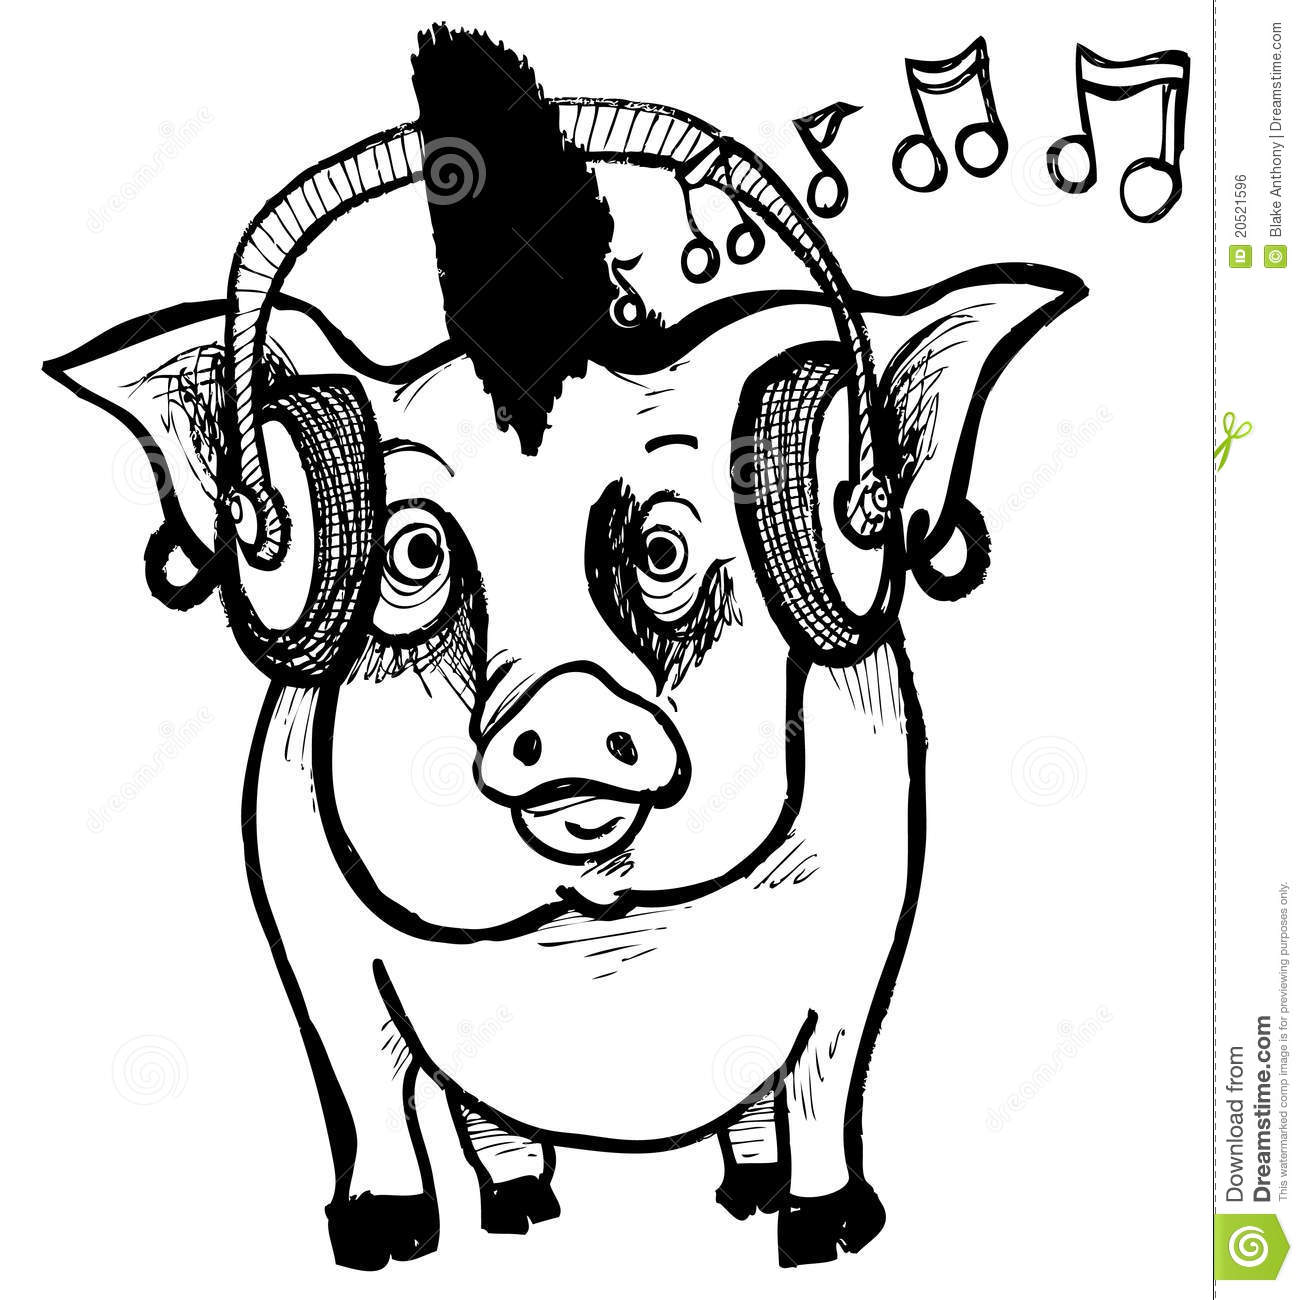 Cool Animal Print Wallpaper Punk Rock Piggy Stock Vector Image Of Funny Music Cool